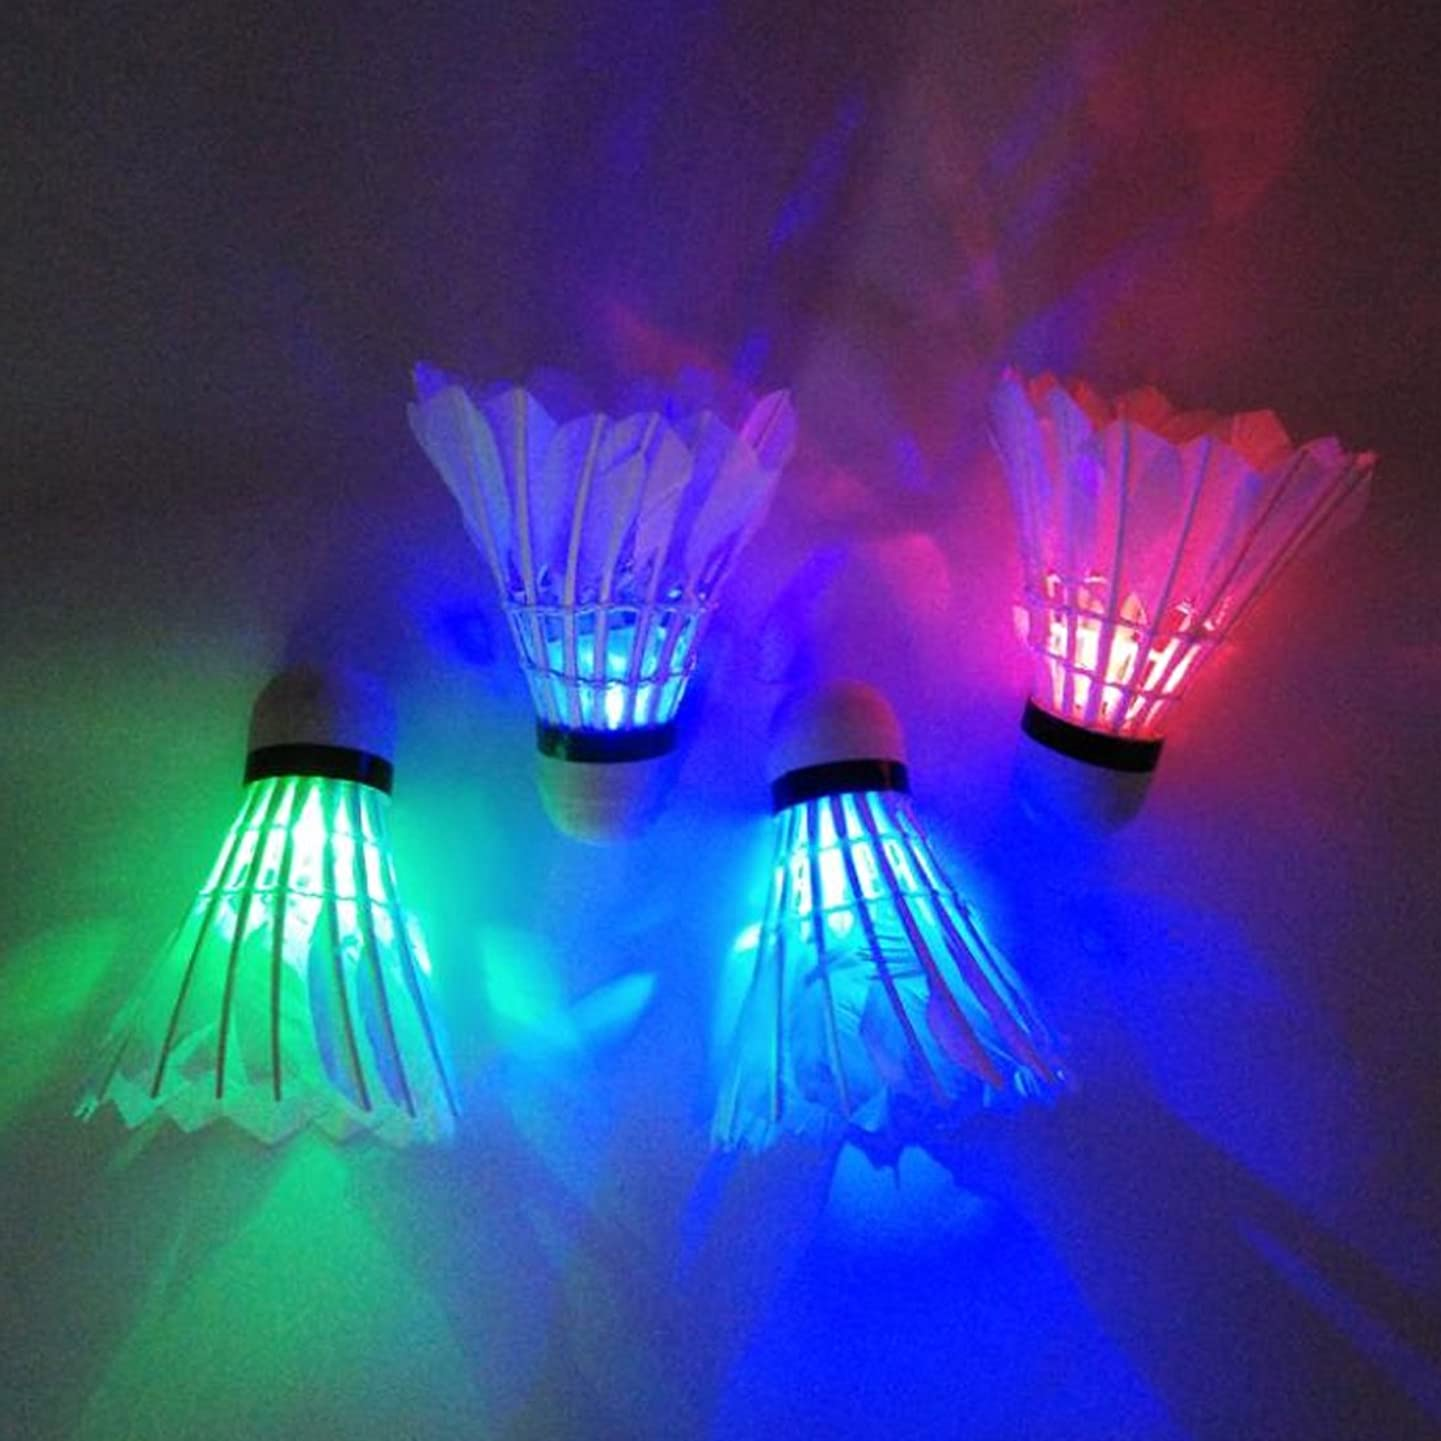 ILLIO Practical 4 PCs Colorful LED Badminton Shuttlecock Ball Feather Glow in Night Outdoor Entertainment Sport Accessories